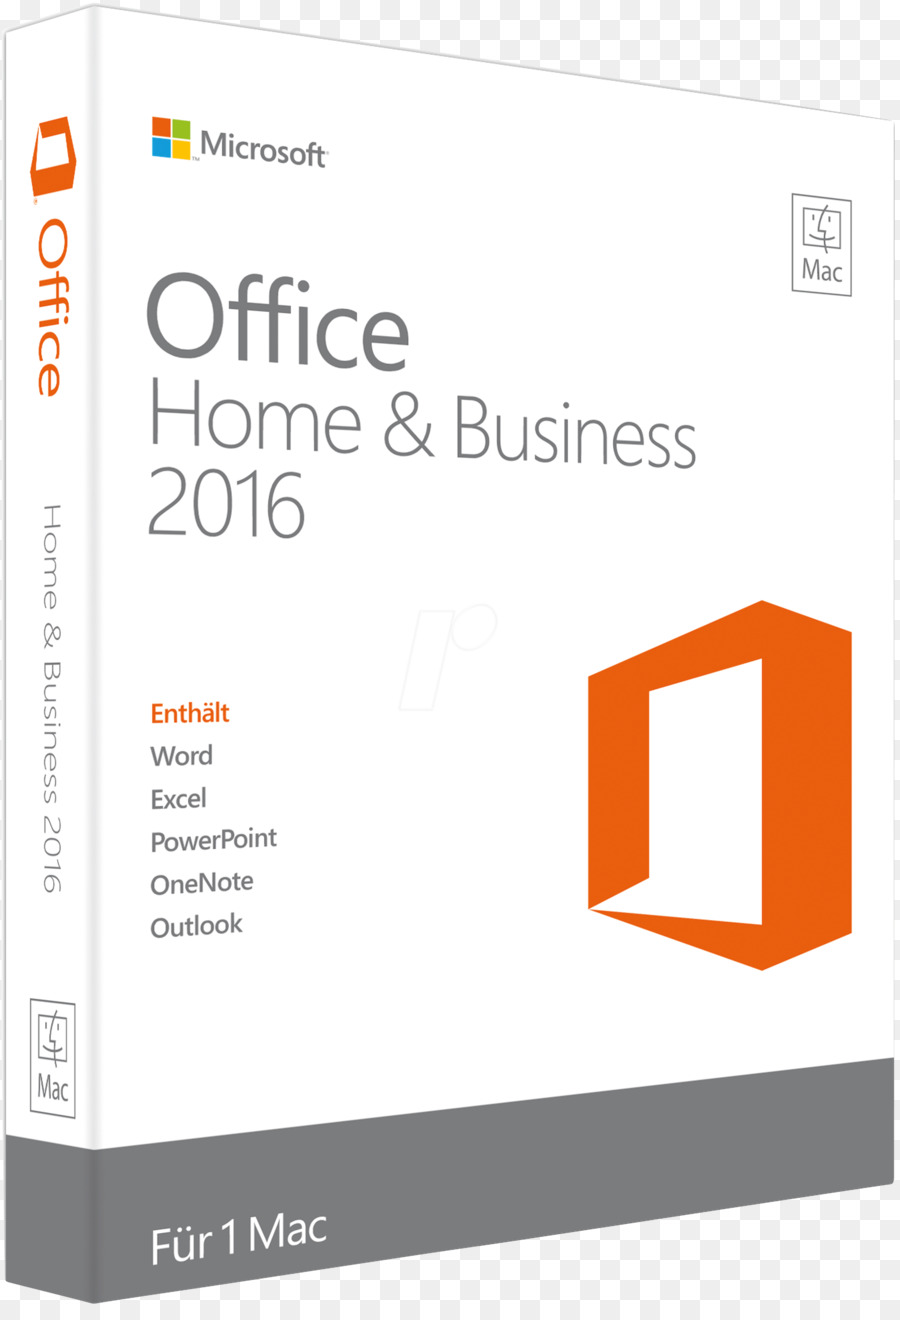 Microsoft Office 2016 Microsoft Office 365 Microsoft Office for Mac ...